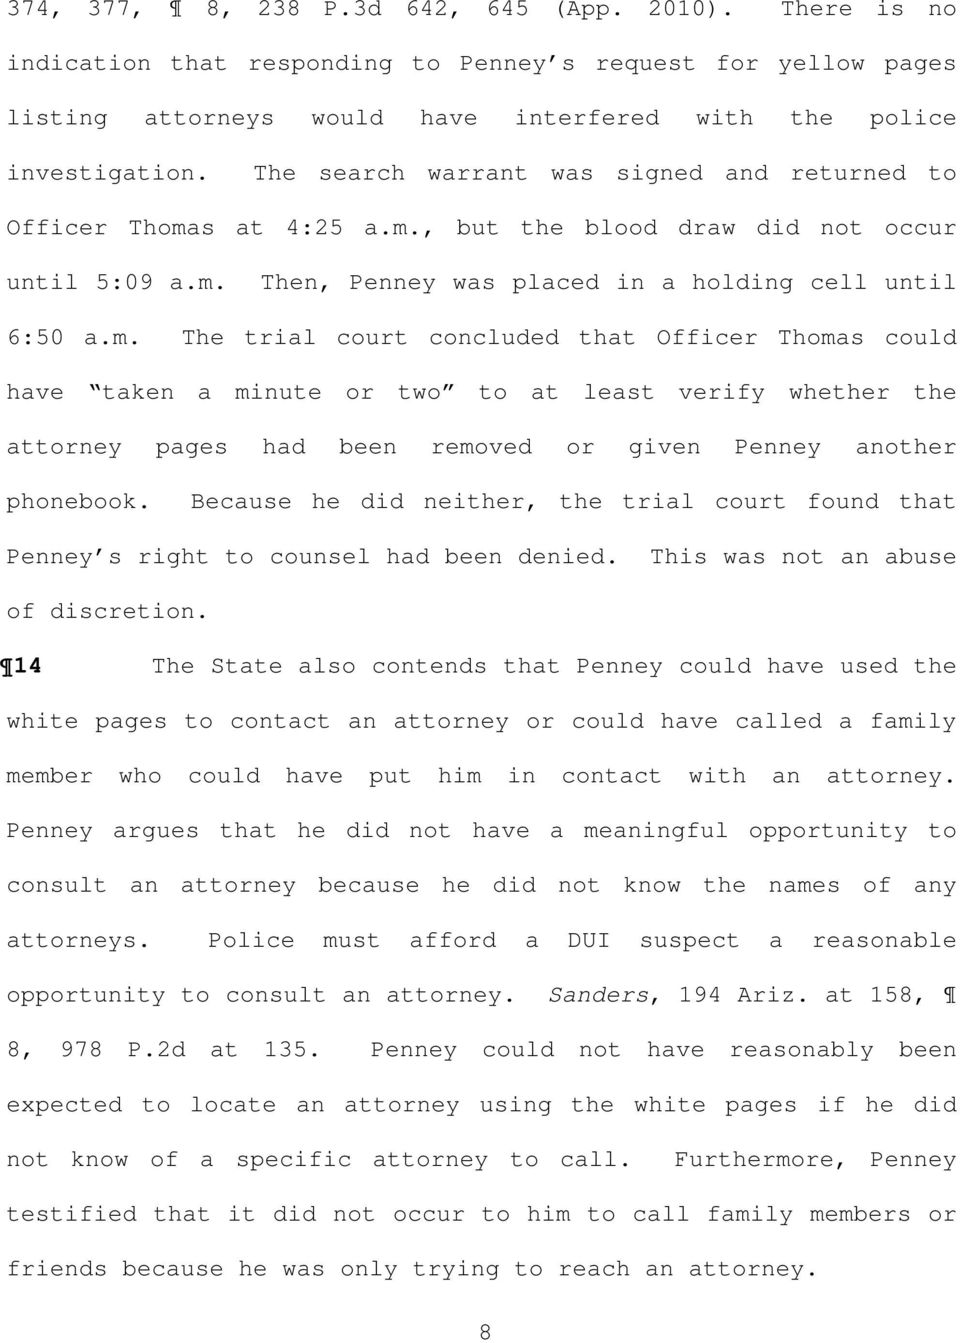 s at 4:25 a.m., but the blood draw did not occur until 5:09 a.m. Then, Penney was placed in a holding cell until 6:50 a.m. The trial court concluded that Officer Thomas could have taken a minute or two to at least verify whether the attorney pages had been removed or given Penney another phonebook.